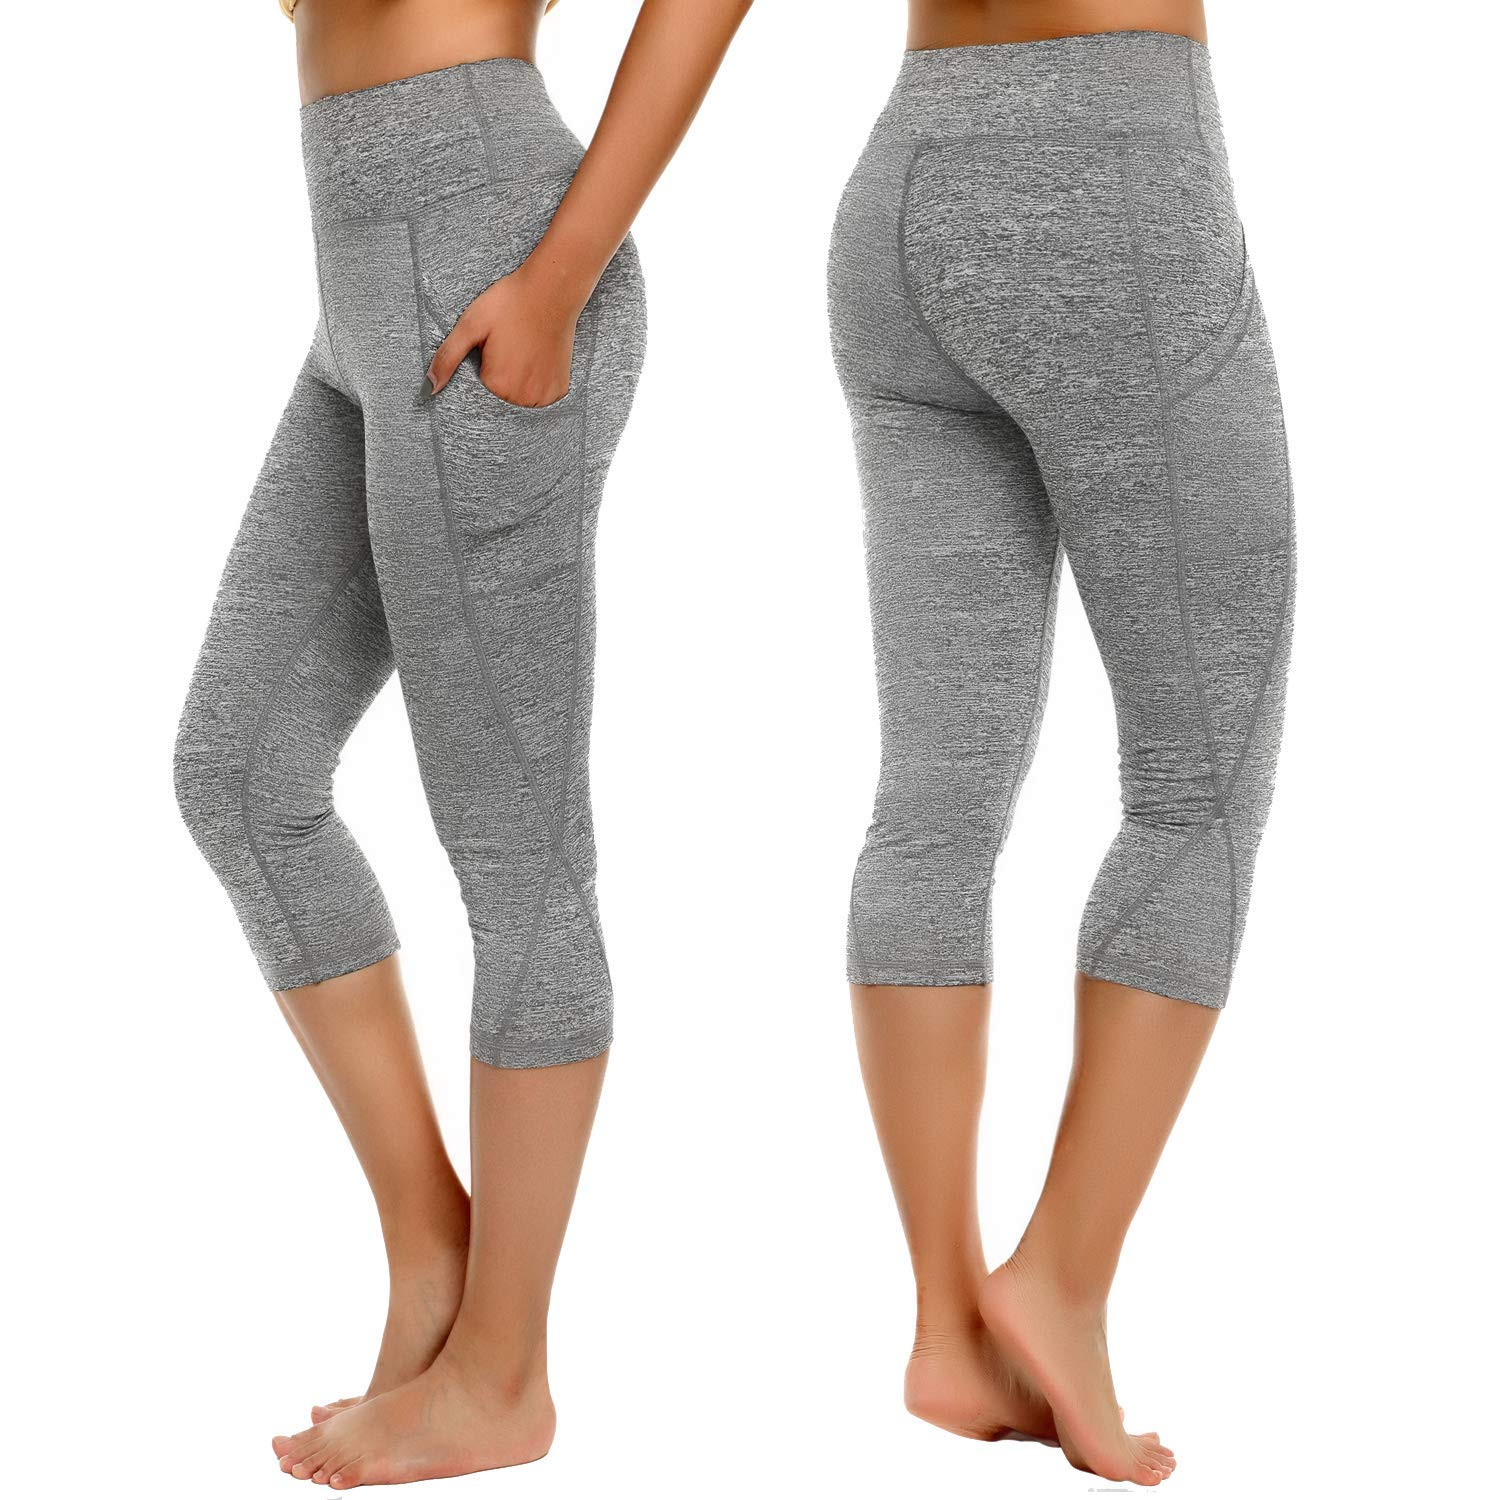 4d45310460fca Get Quotations · CROSS1946 Sexy Women's Out Pocket Yoga Fitness Cropped  Pants Skinny Leggings Tummy Control Workout Capris